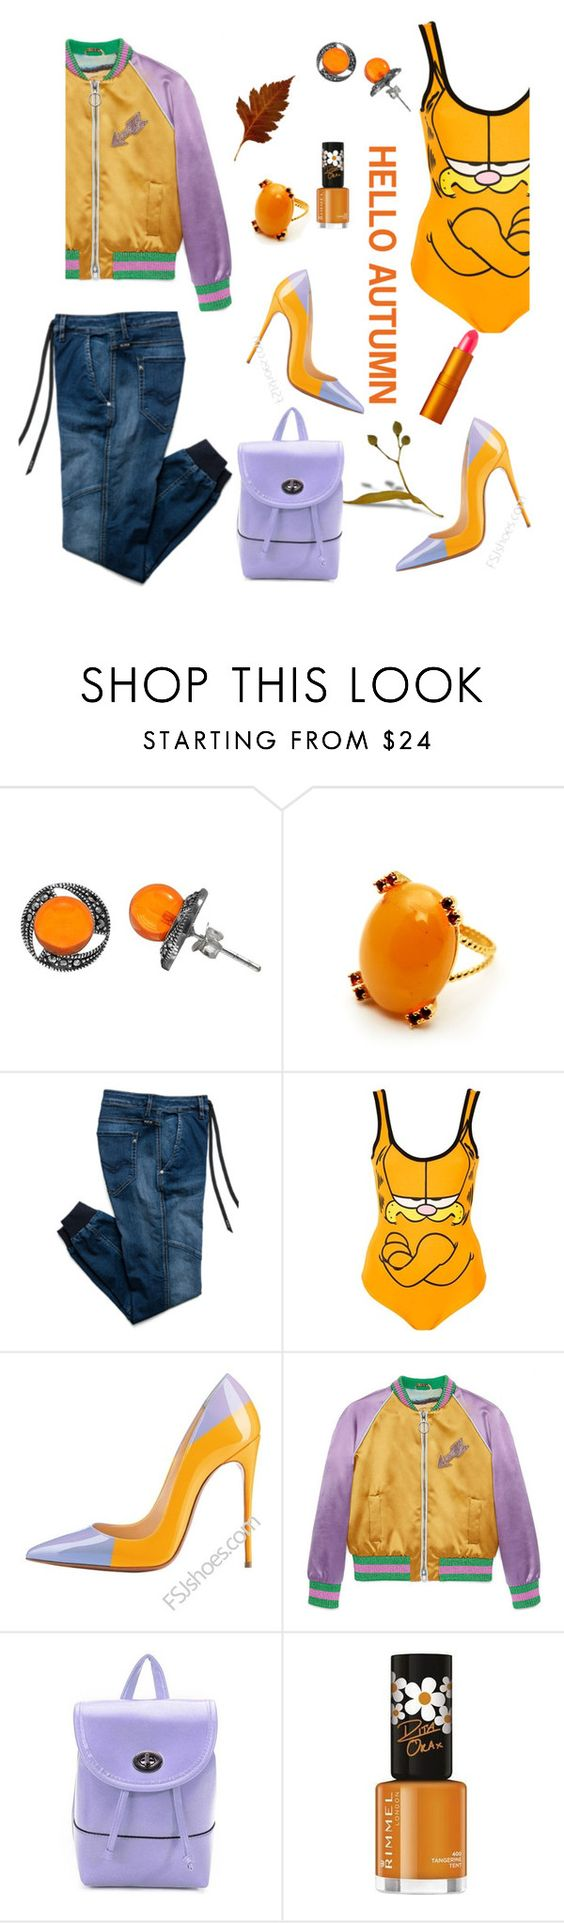 """Untitled #825"" by lisacom ❤ liked on Polyvore featuring Goldmajor, Replay, Topshop, Gucci, Rimmel and Lipstick Queen"